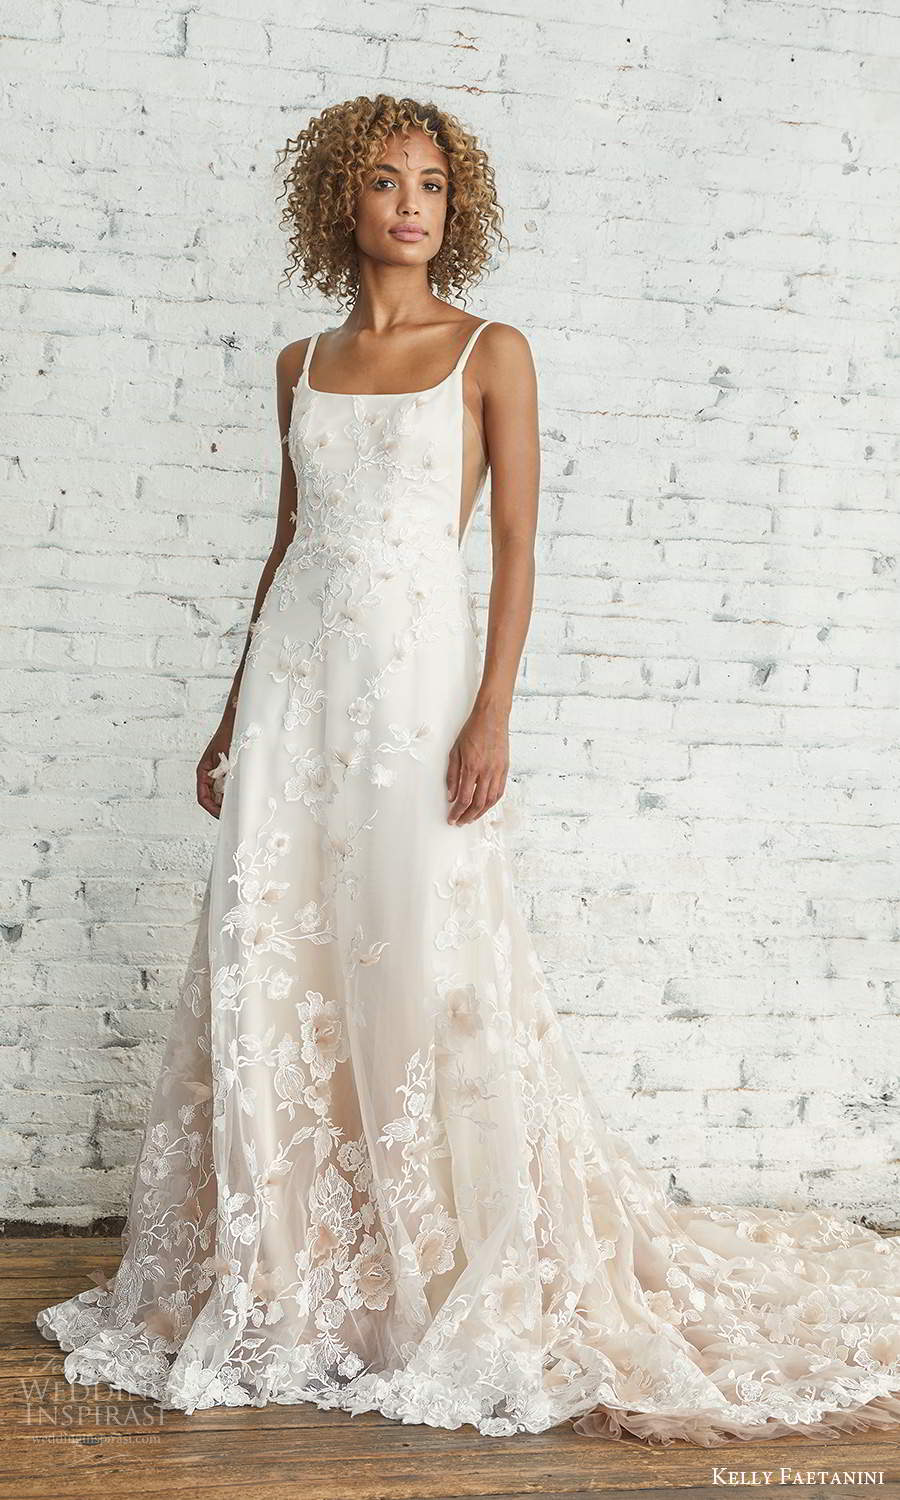 kelly faetanini 2021 bridal sleeveless straps square neckline side cutouts fully embellished ombre skirt a line ball gown wedding dress chapel (1) mv